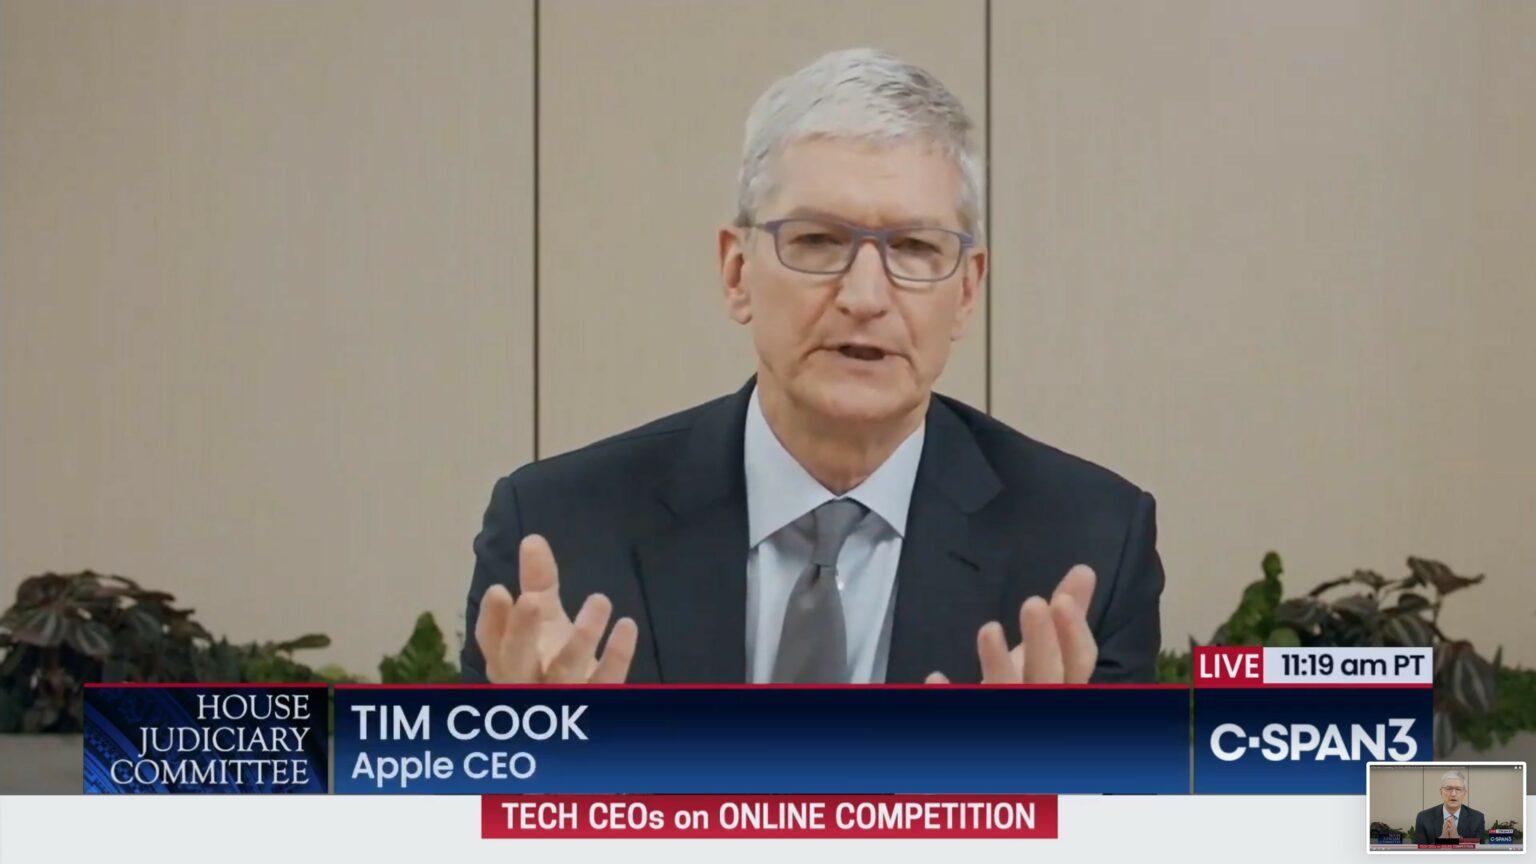 Tim Cook answers questions about App Store business practices during the House Judiciary antitrust subcommittee hearing.